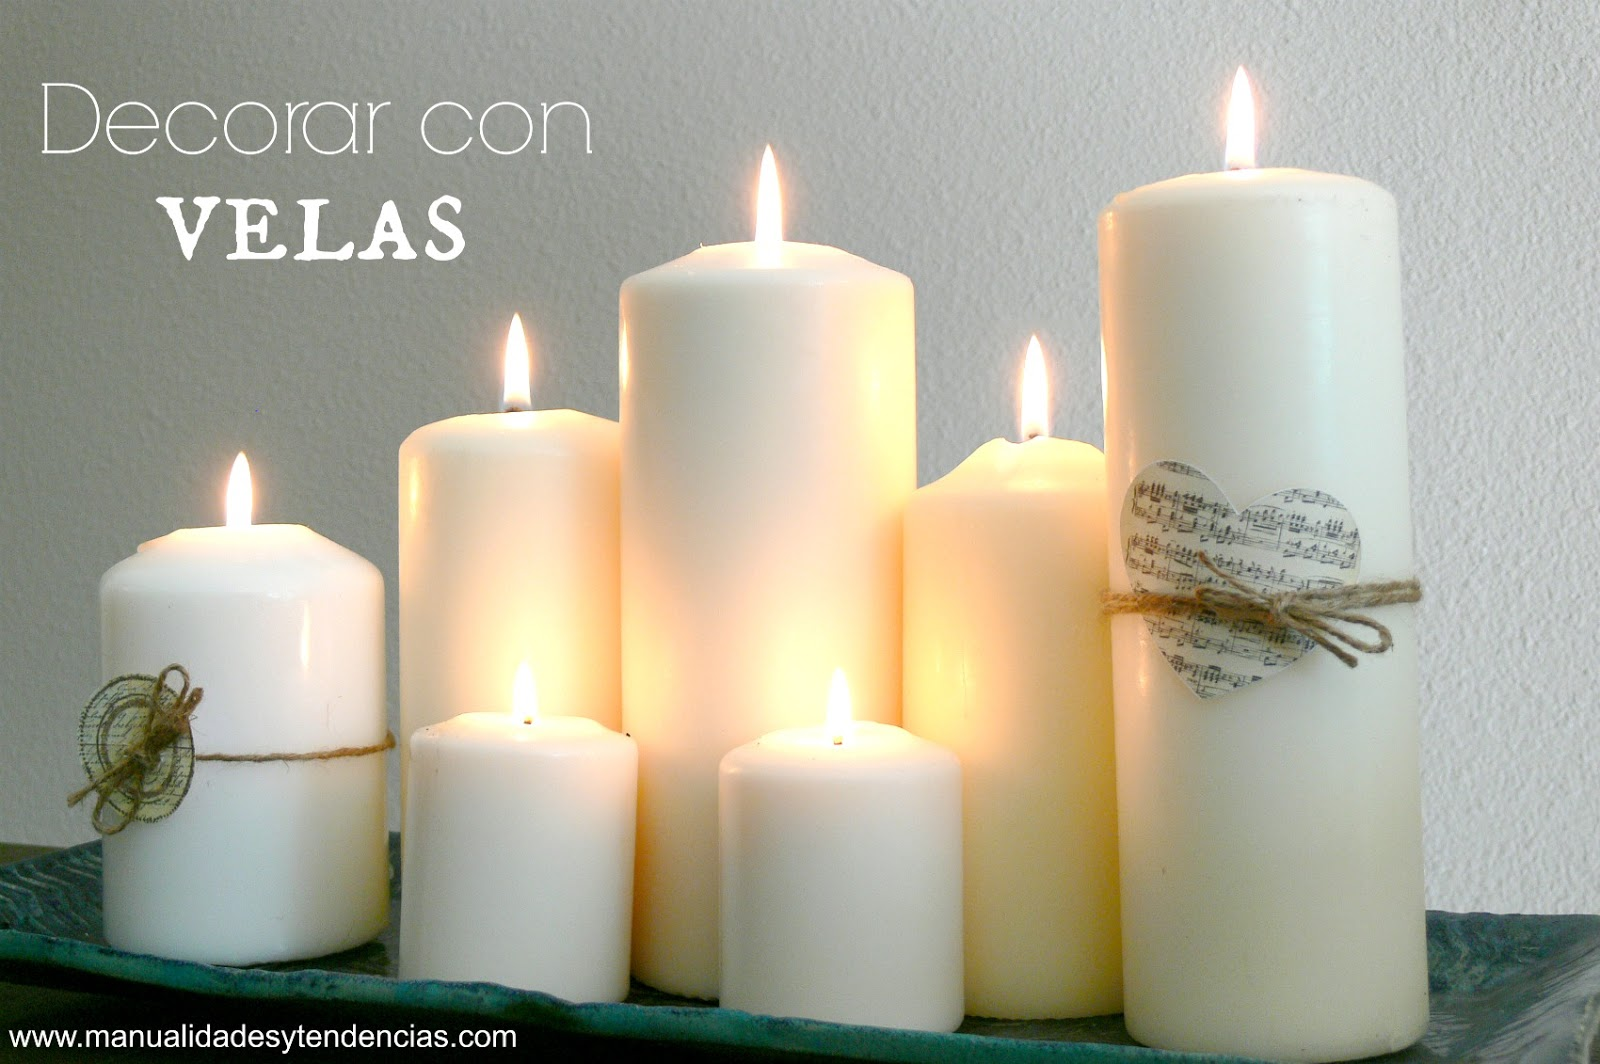 Decoracion velas cmo decorar con velas with decoracion - Decorar velas para navidad ...